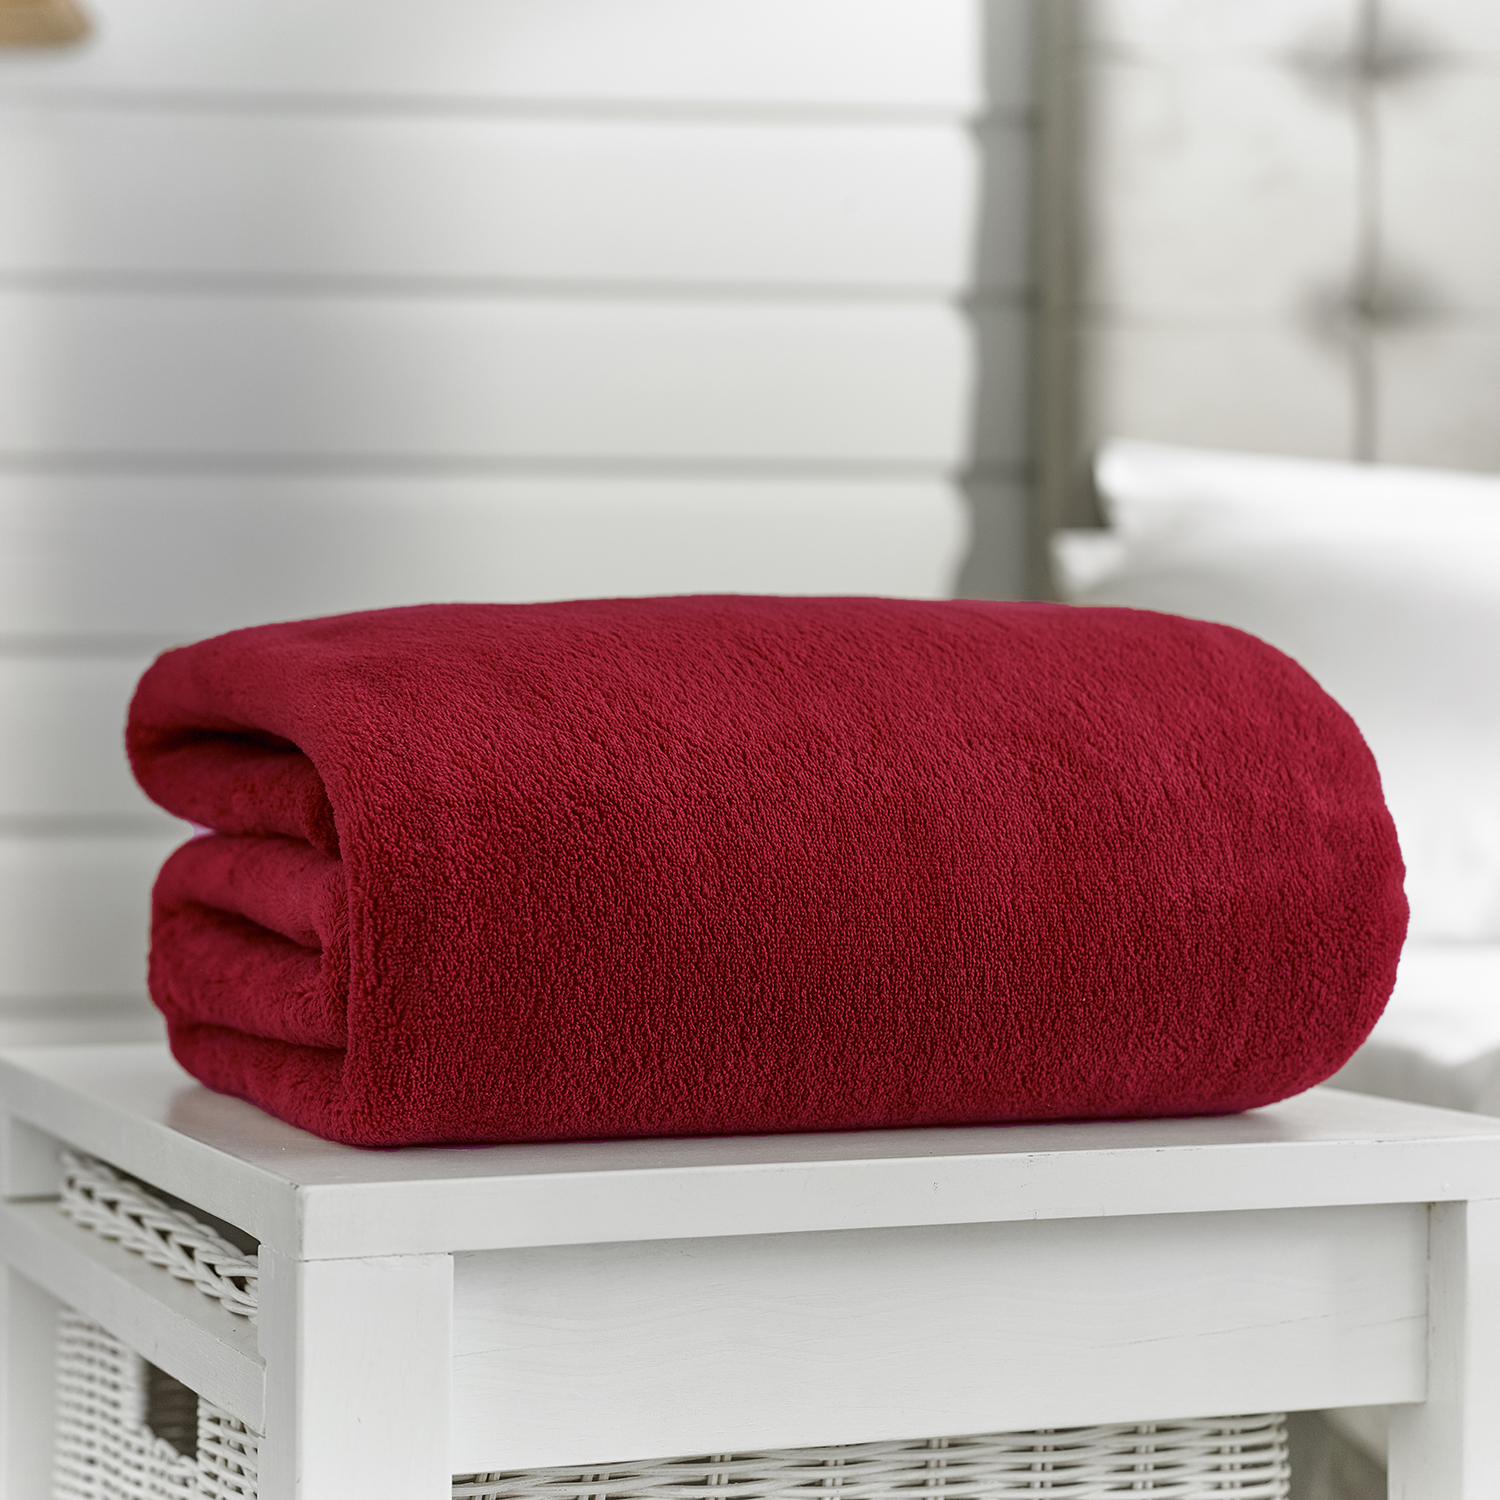 Deyongs Snuggle Touch Throw 140x180 Oxblood